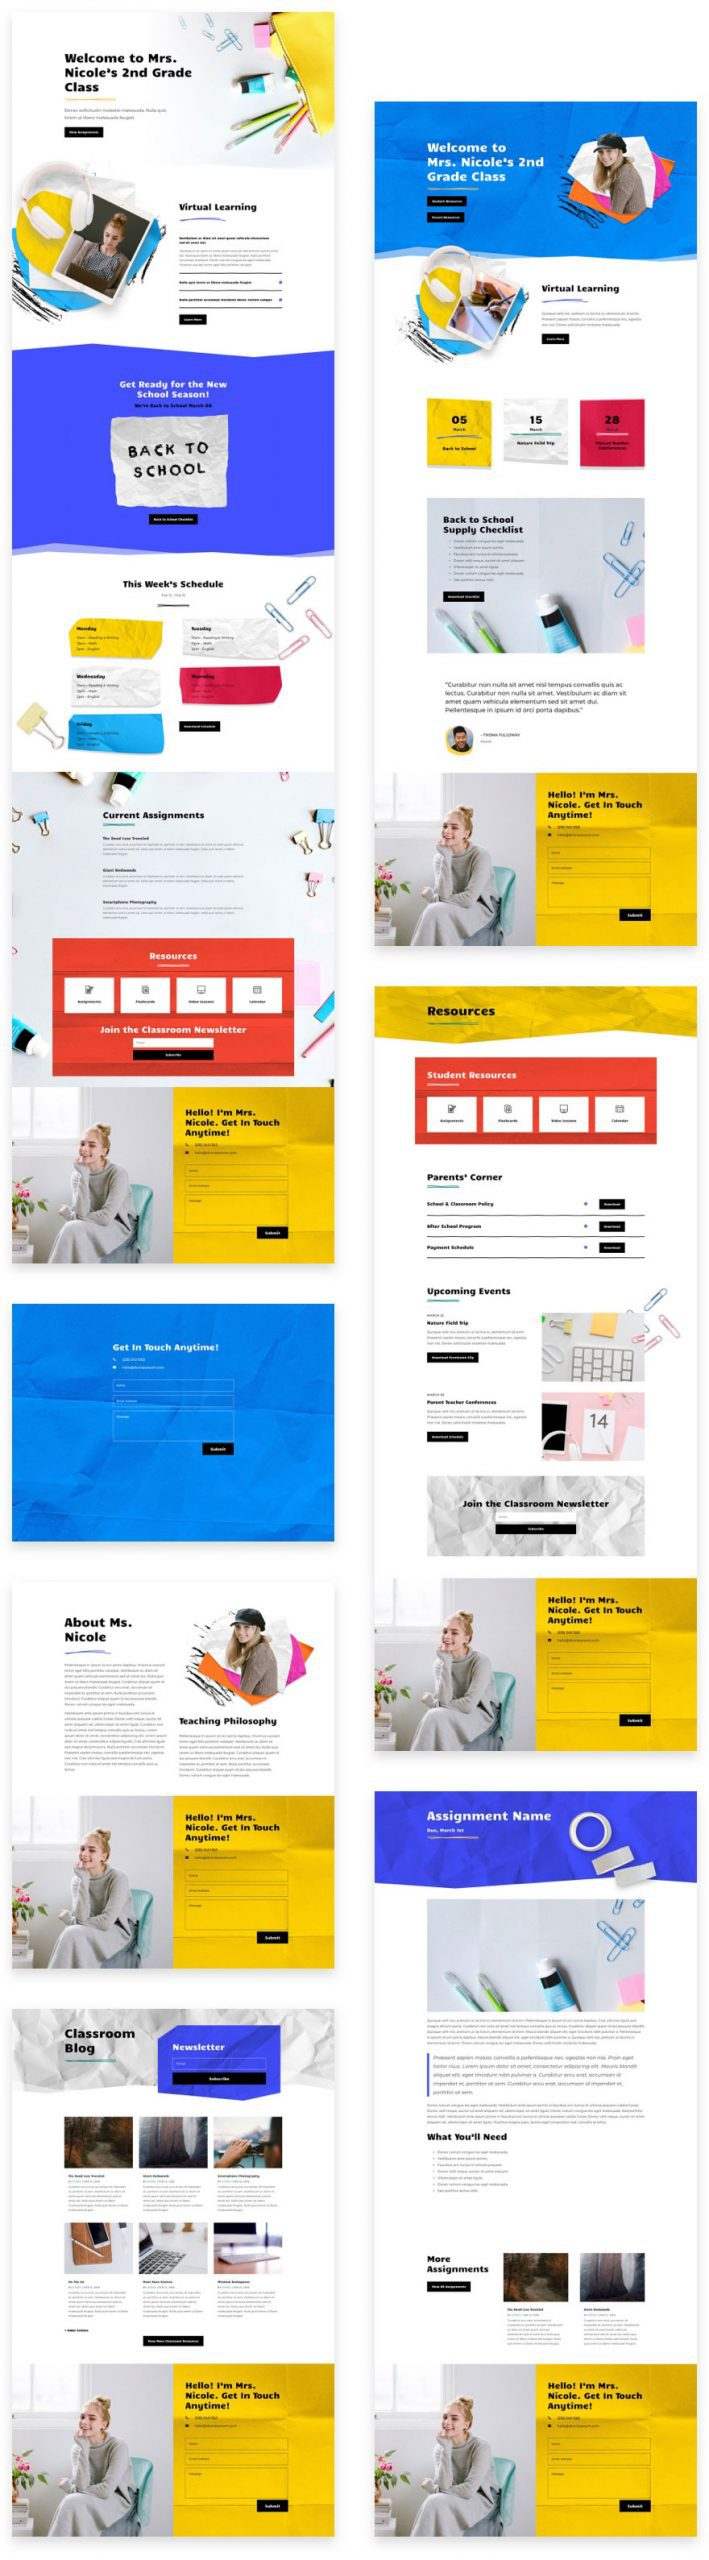 Classroom Layout Pack